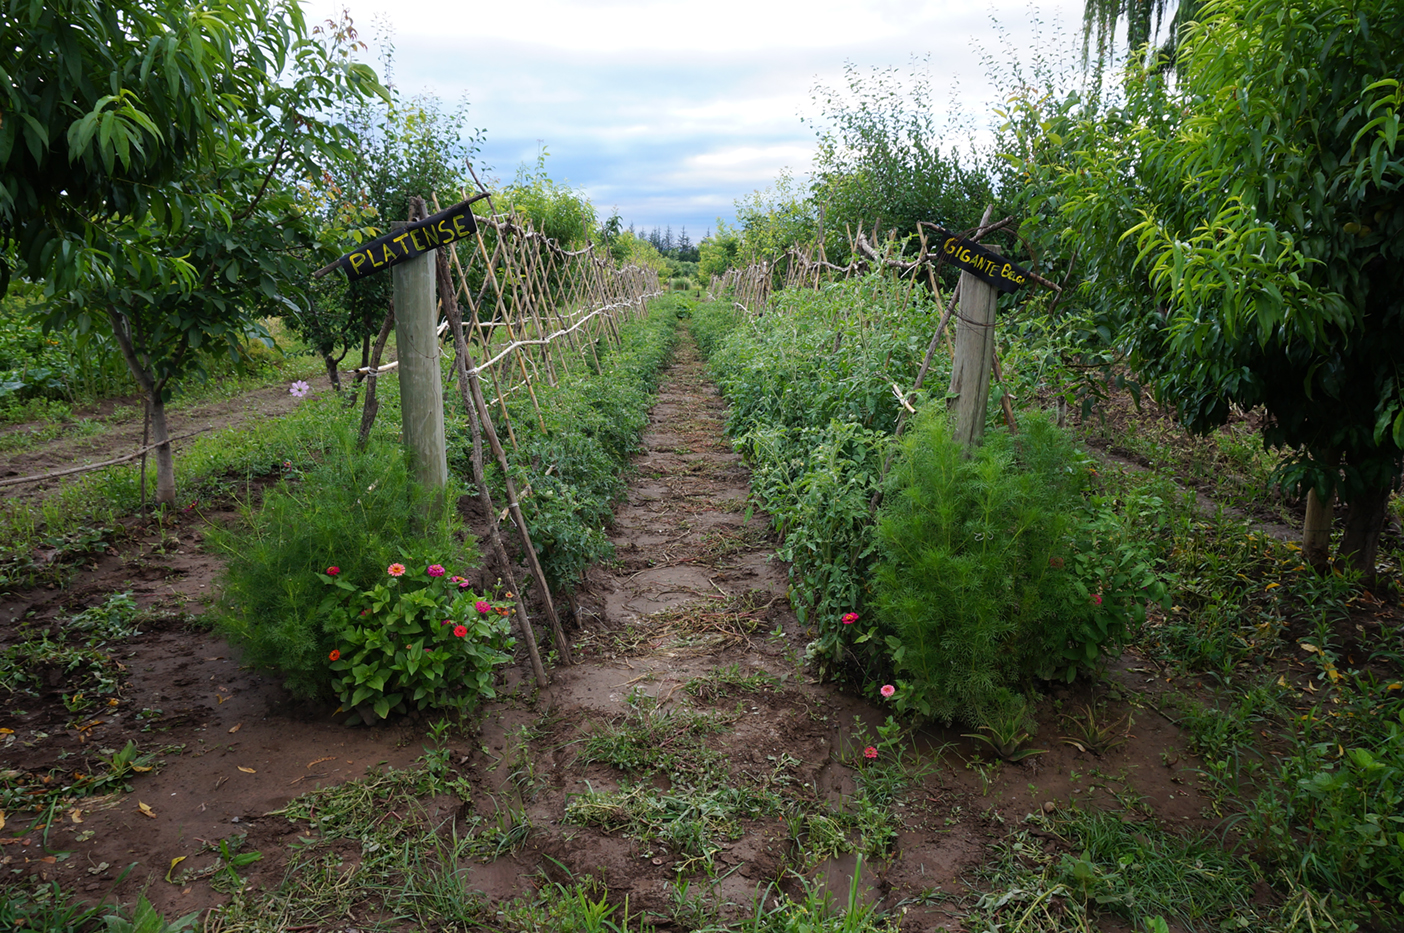 The tomatoes weren't quite ready, but it would be great to be here during harvesting and preserving.